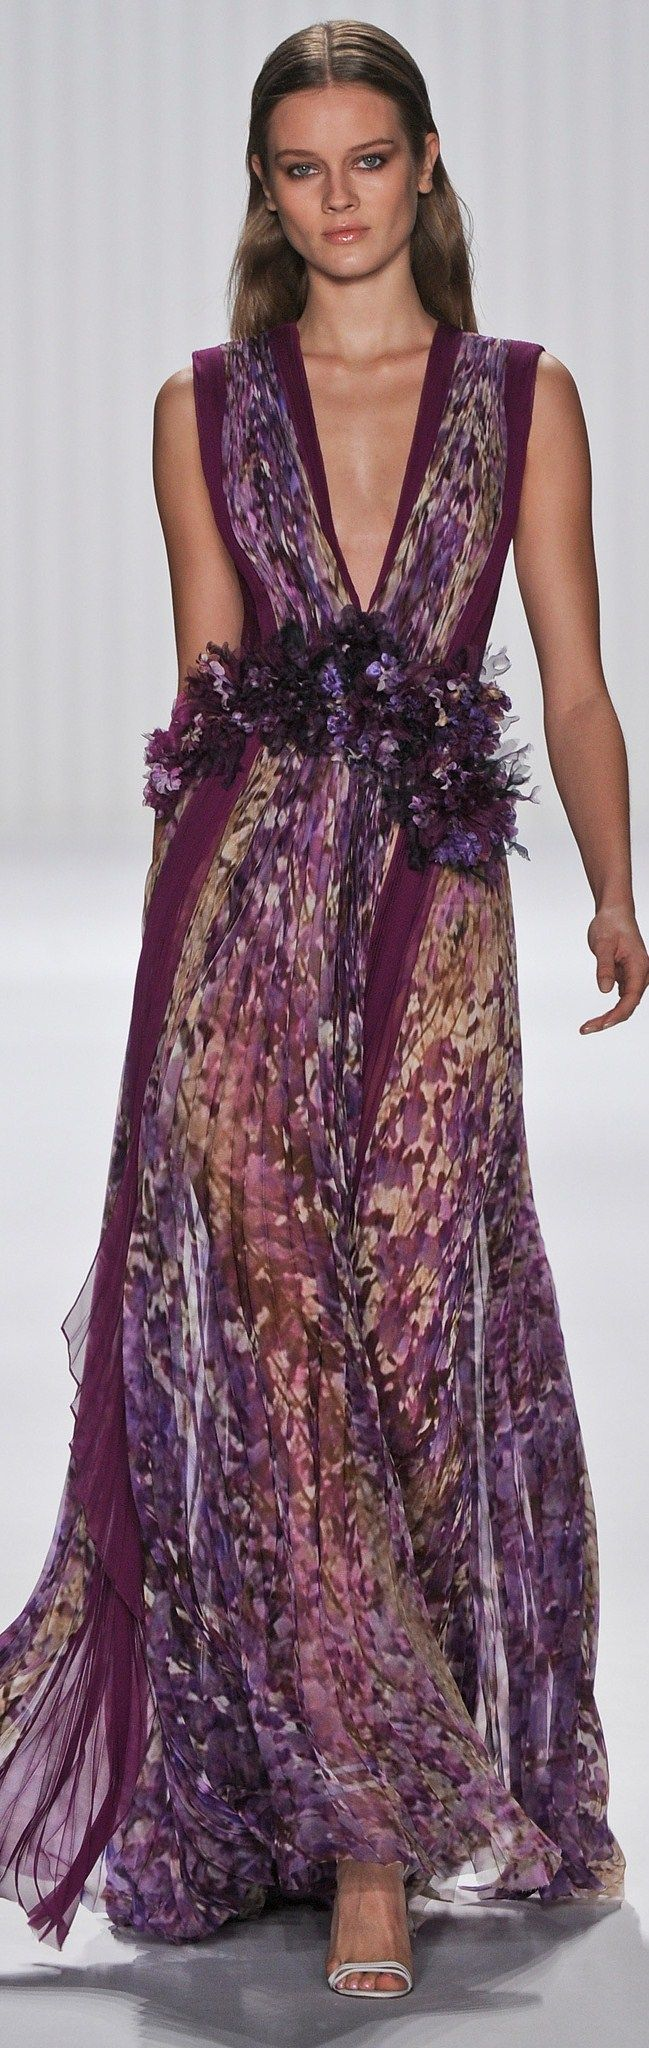 Toronto fashion week street style a purple haze - Find This Pin And More On Color Purple Fashion By Mariafelix35